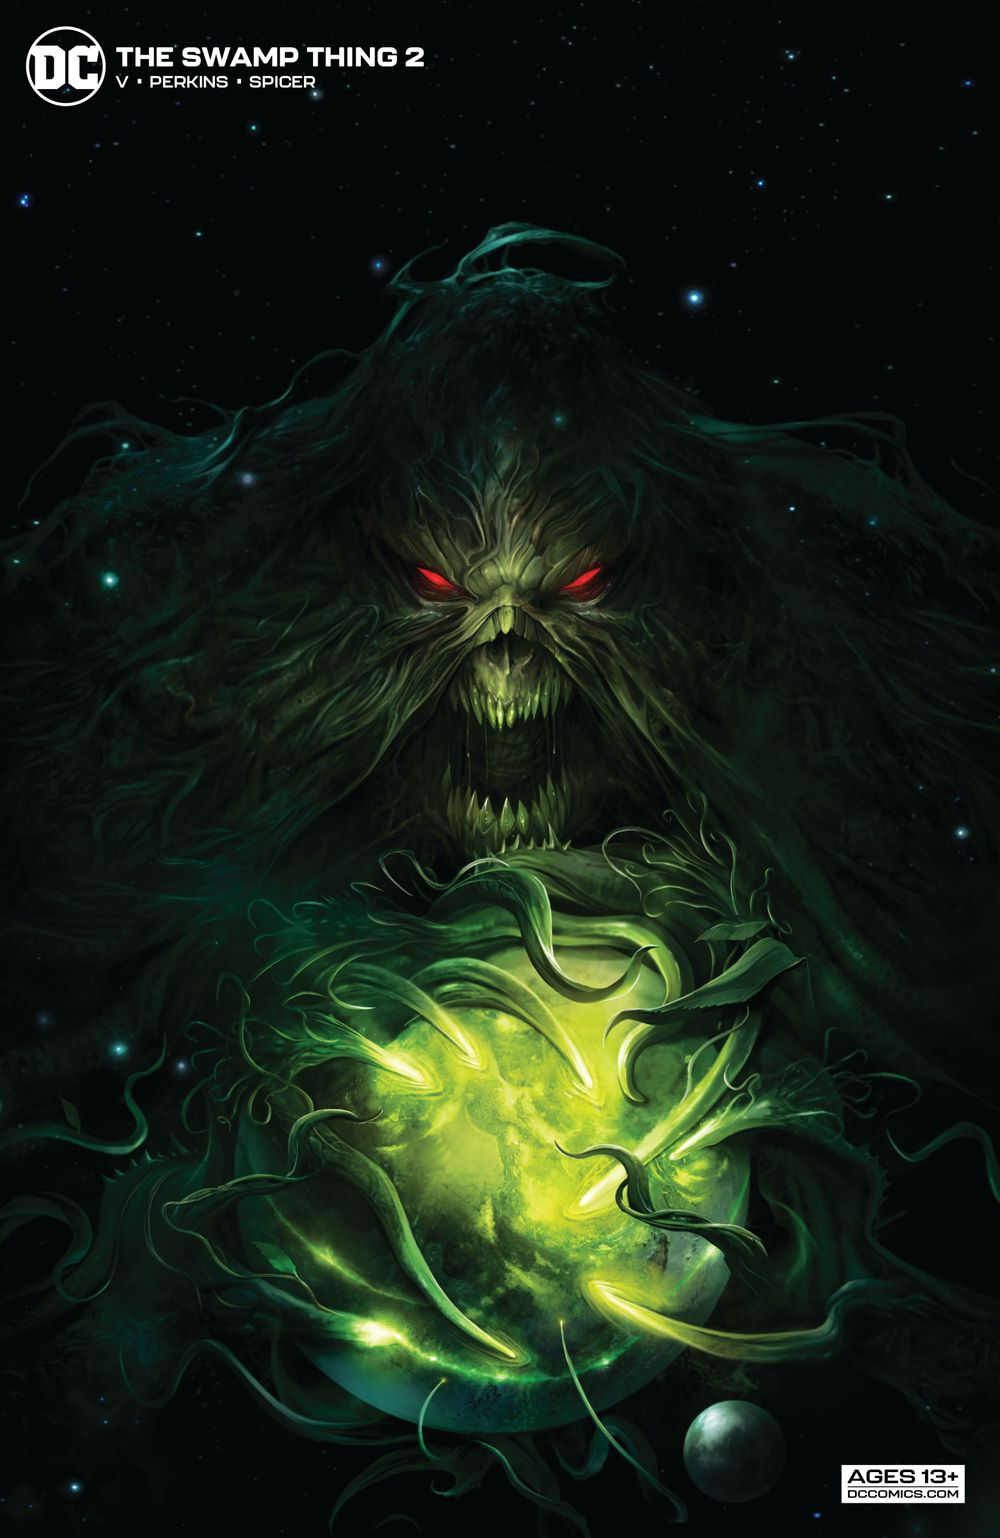 The-Swamp-Thing-2-2_6067cdecd95755.39656109 ComicList Previews: THE SWAMP THING #2 (OF 10)